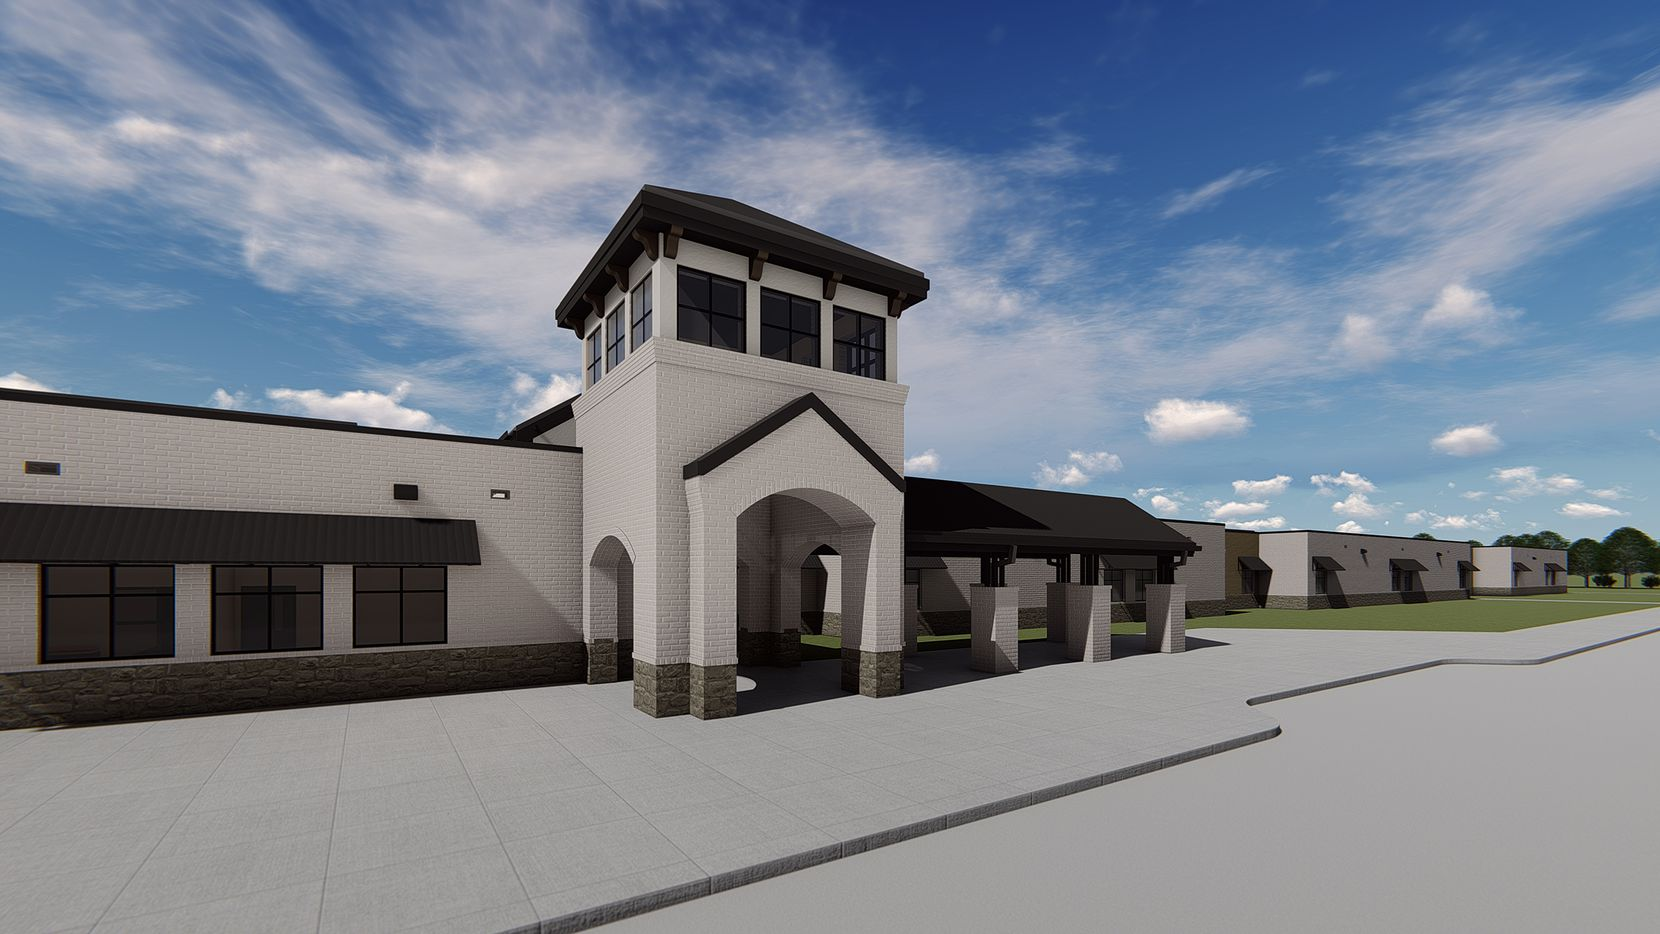 Mustang Lakes in Celina will mark the opening of Sam Johnson Elementary School in August.